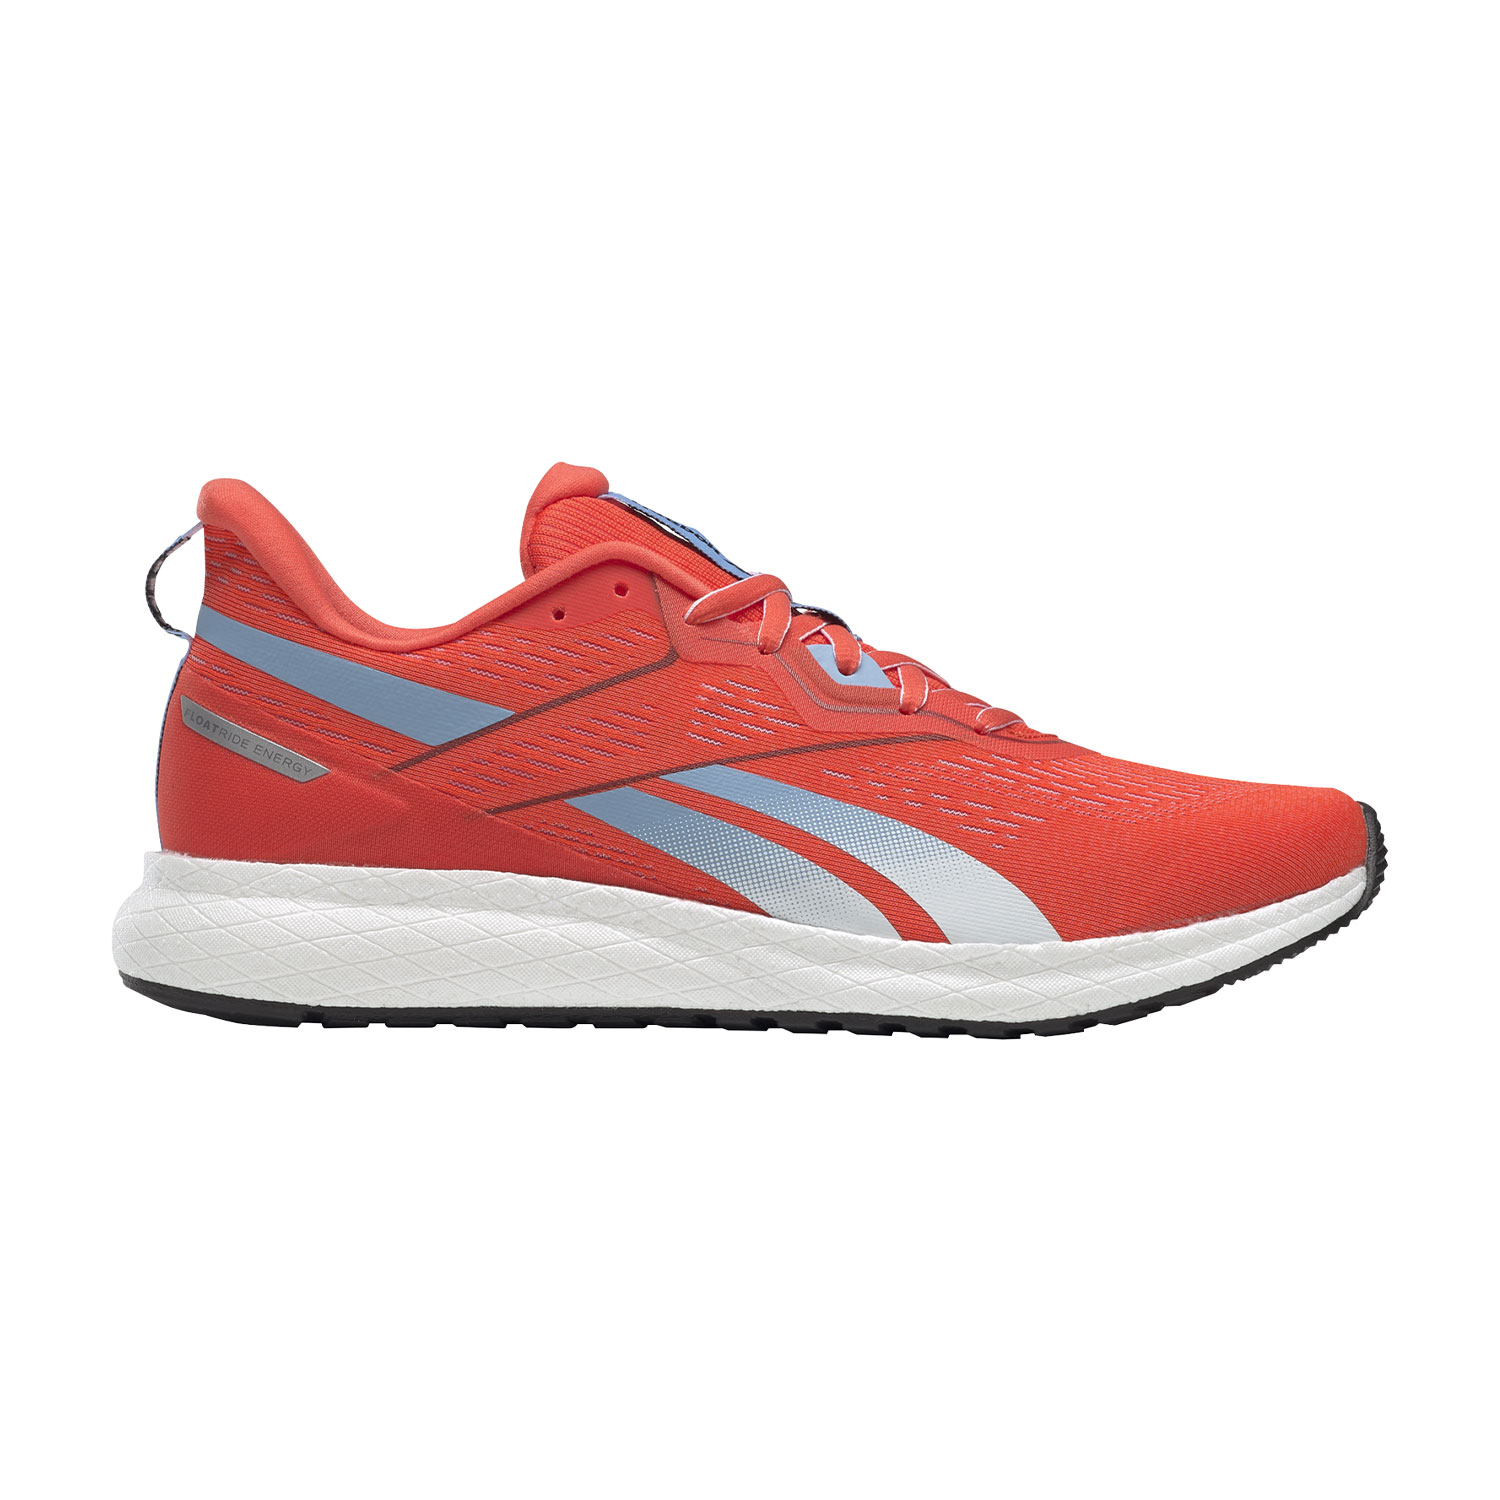 Reebok Forever FloatRide Energy 2 - Vivid Orange/White/Fluid Blue